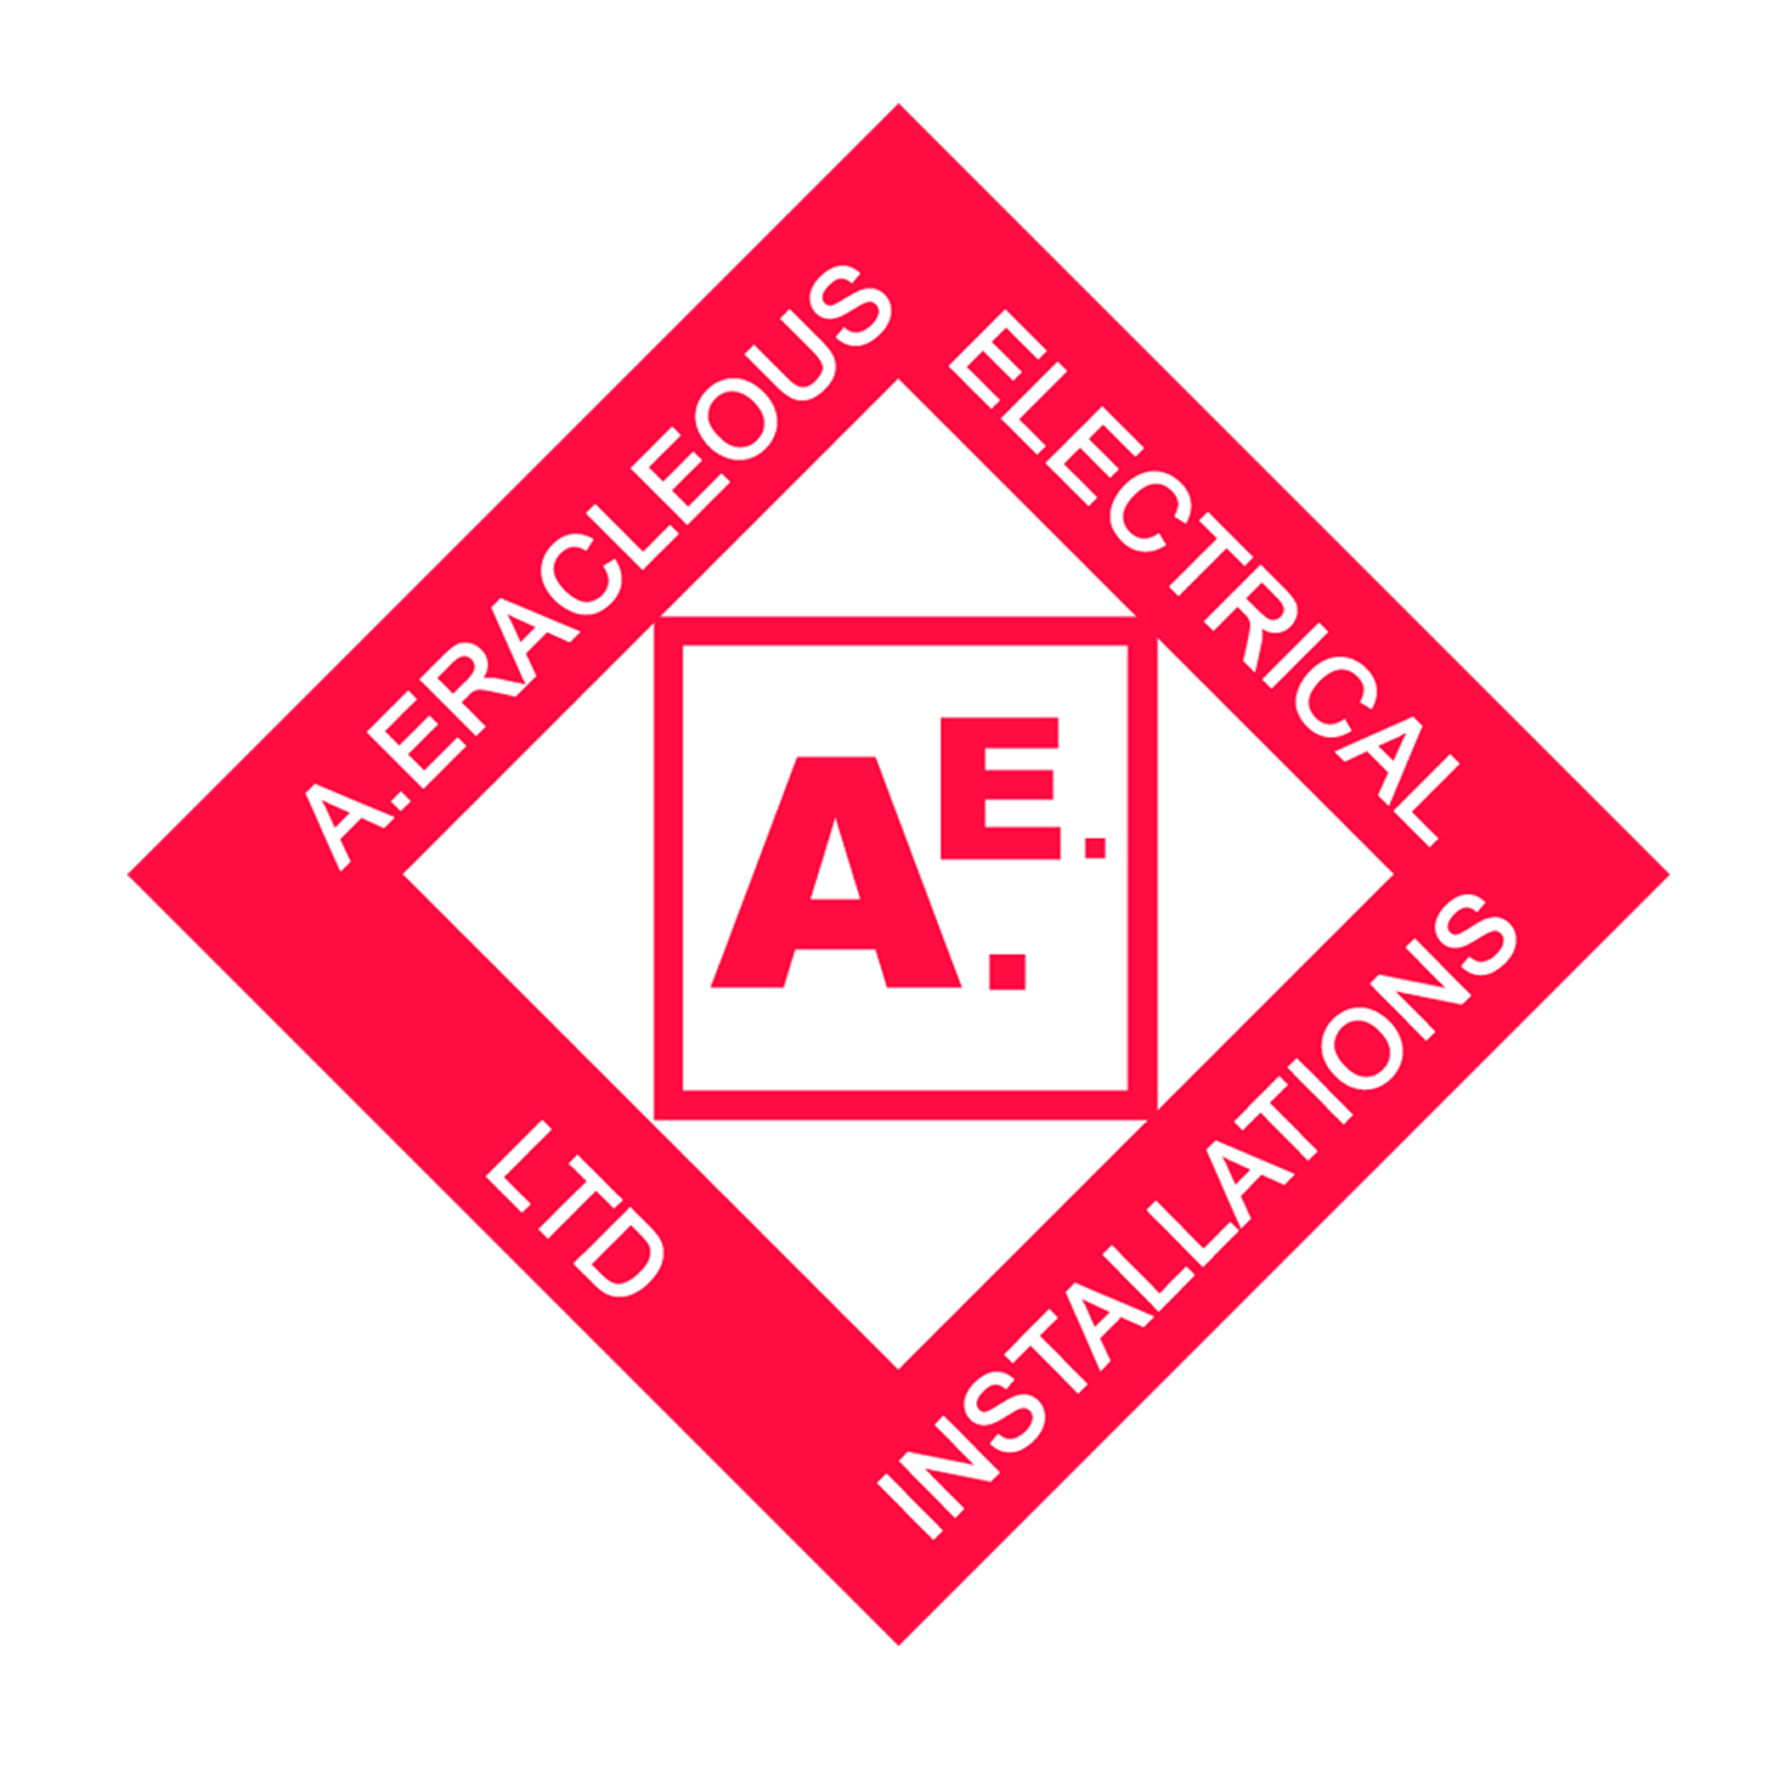 A.ERACLEOUS ELECTRICAL INSTALLATIONS LTD